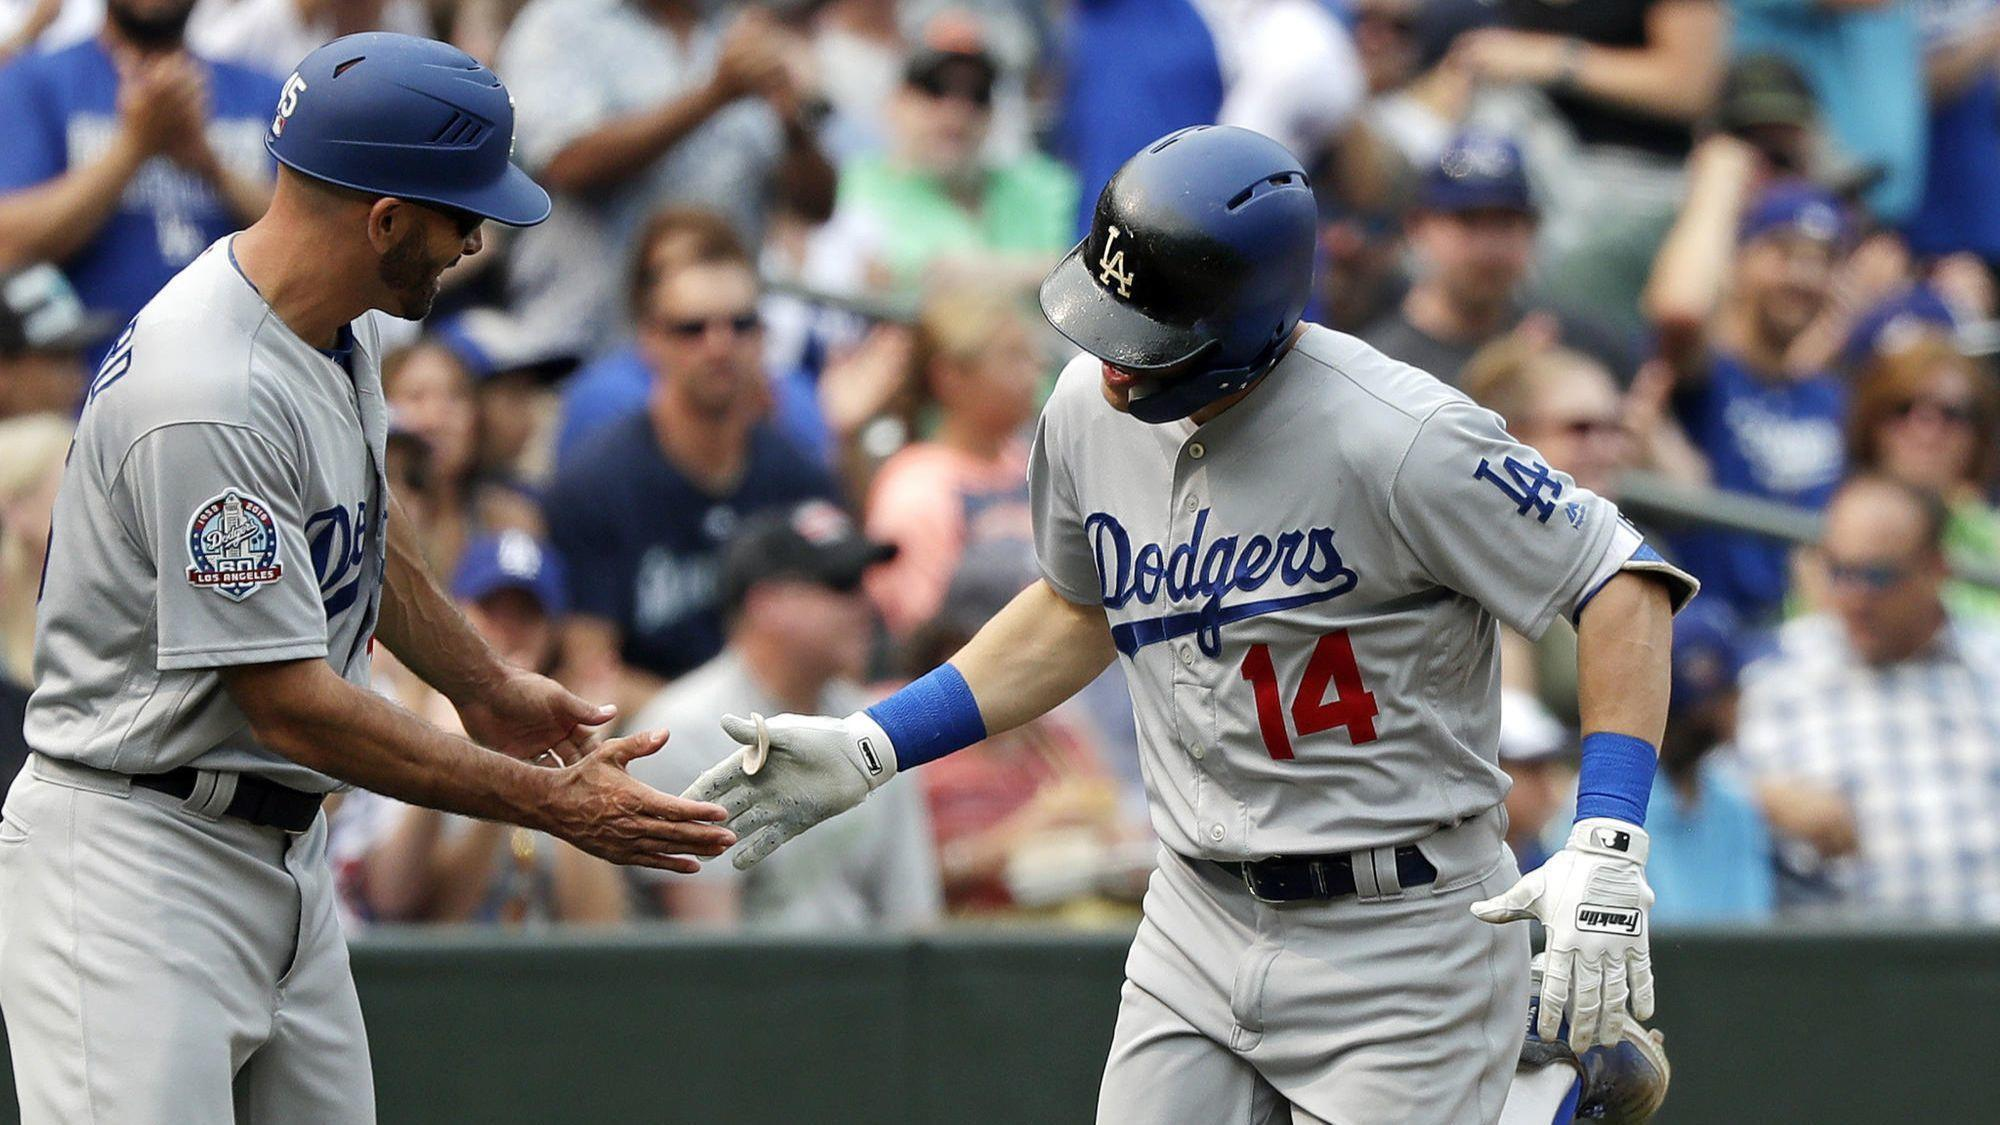 Dodgers stage another offensive ambush in 12-1 victory over the Mariners